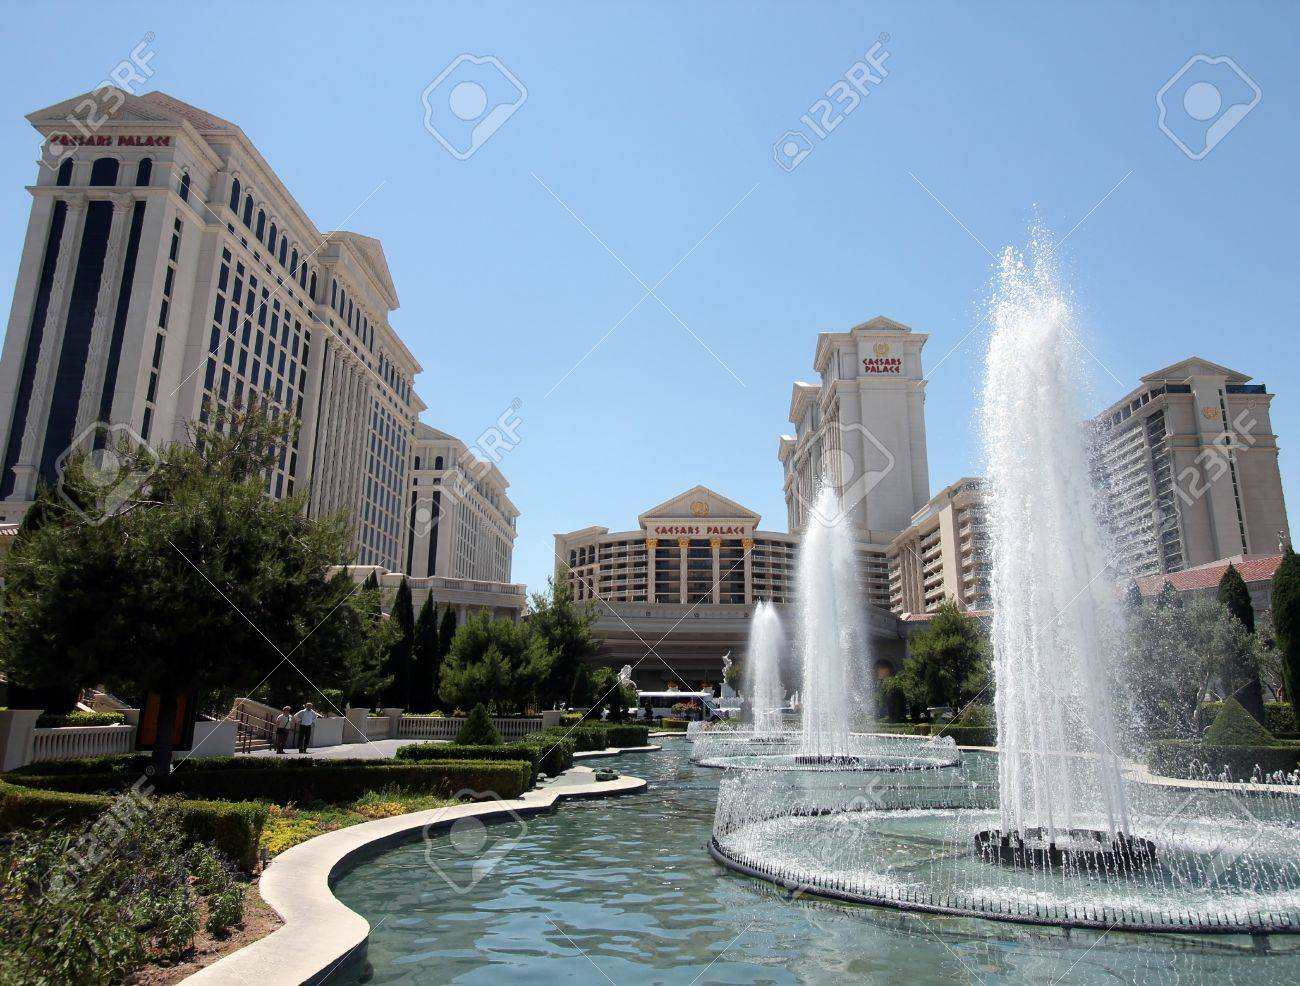 A View of the Caesars Palace Fountains, Las Vegas, Nevada, taken June 9, 2011 - 9891504